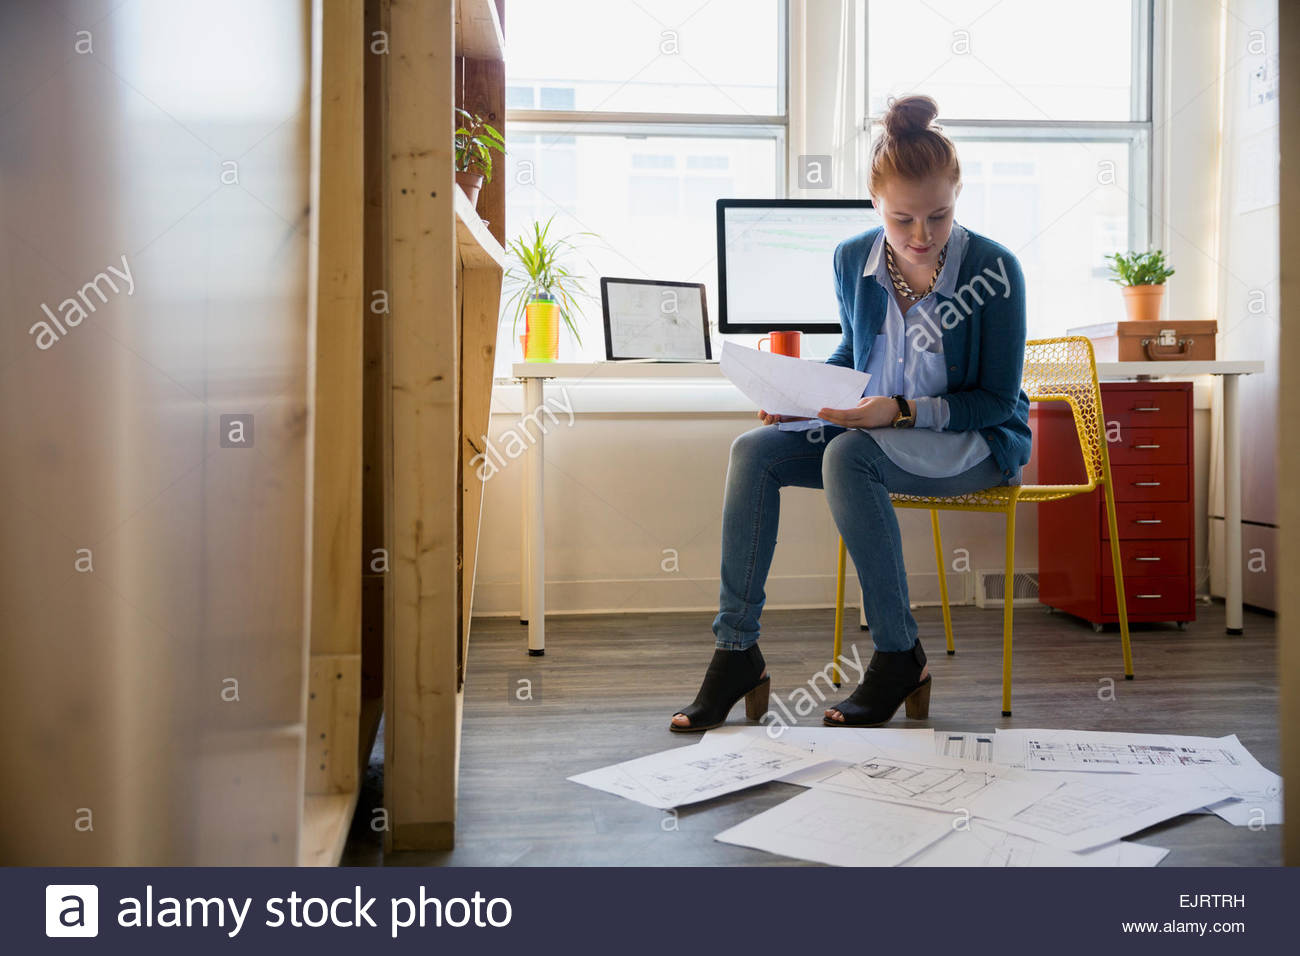 Architect reviewing blueprints on office floor - Stock Image